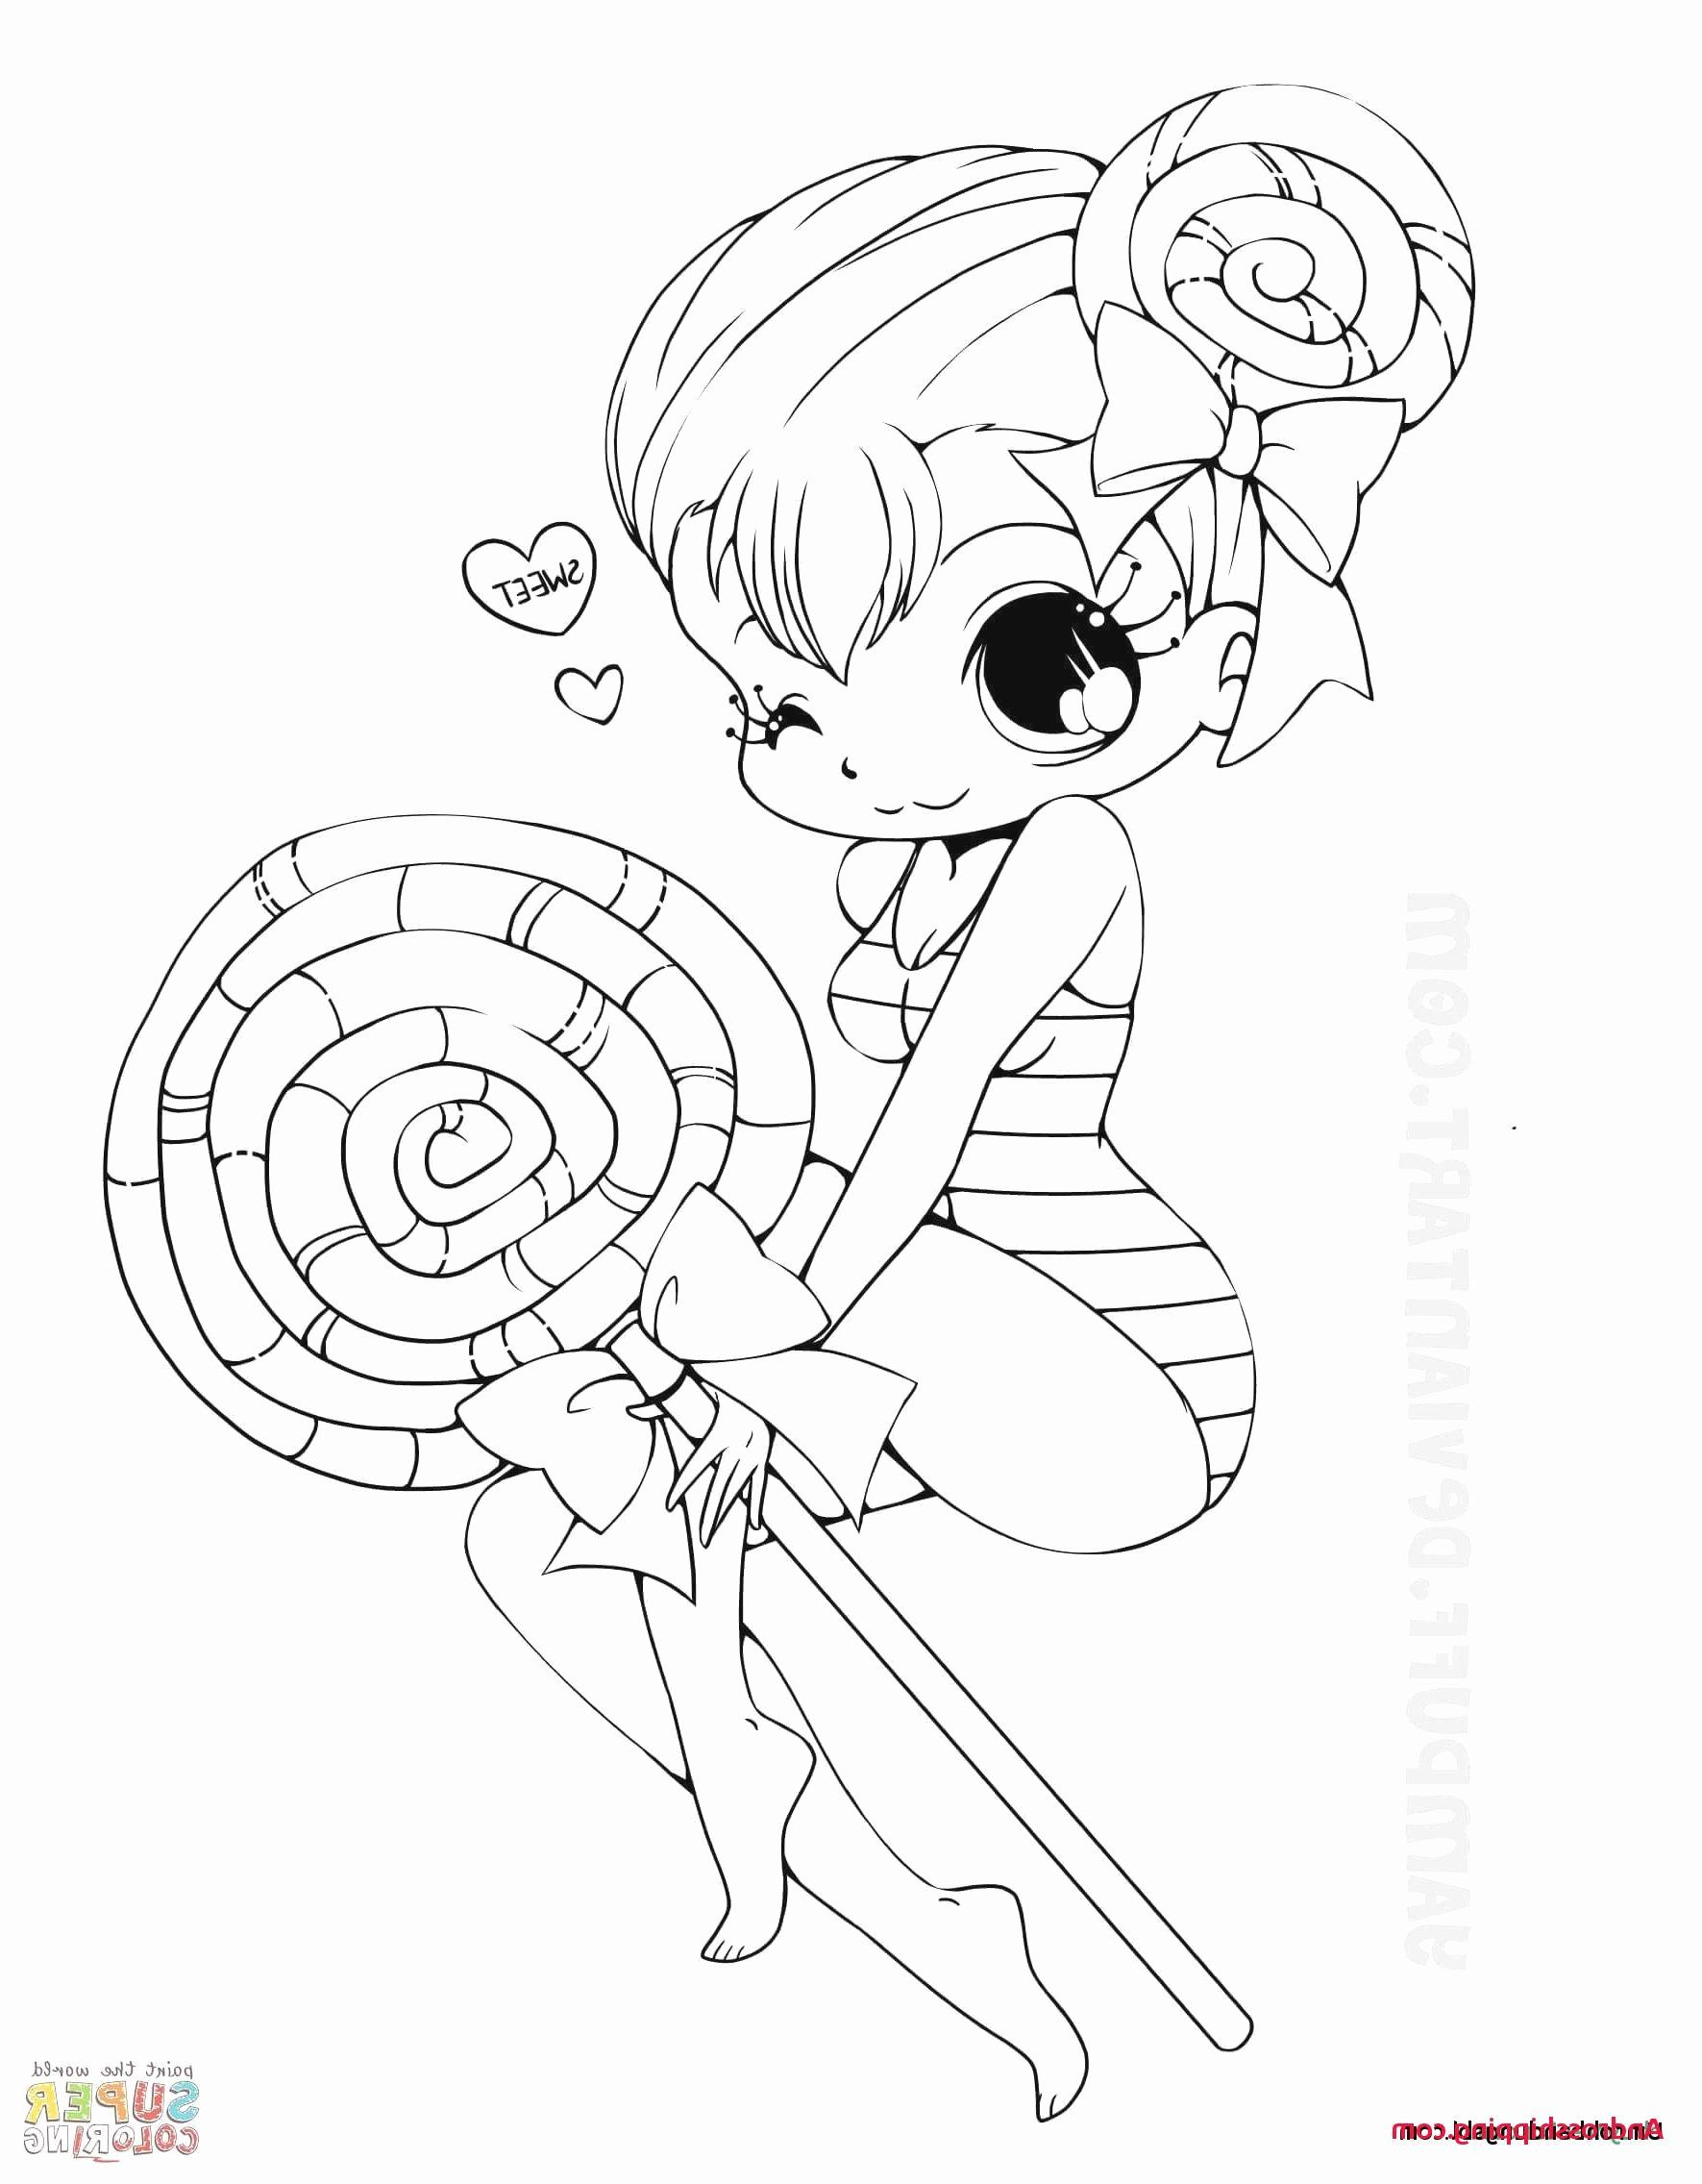 Printable Easter Bunny Coloring Pages Inspirational Girl Face Coloring Page Witch Coloring Pag Witch Coloring Pages Crayola Coloring Pages Fairy Coloring Pages